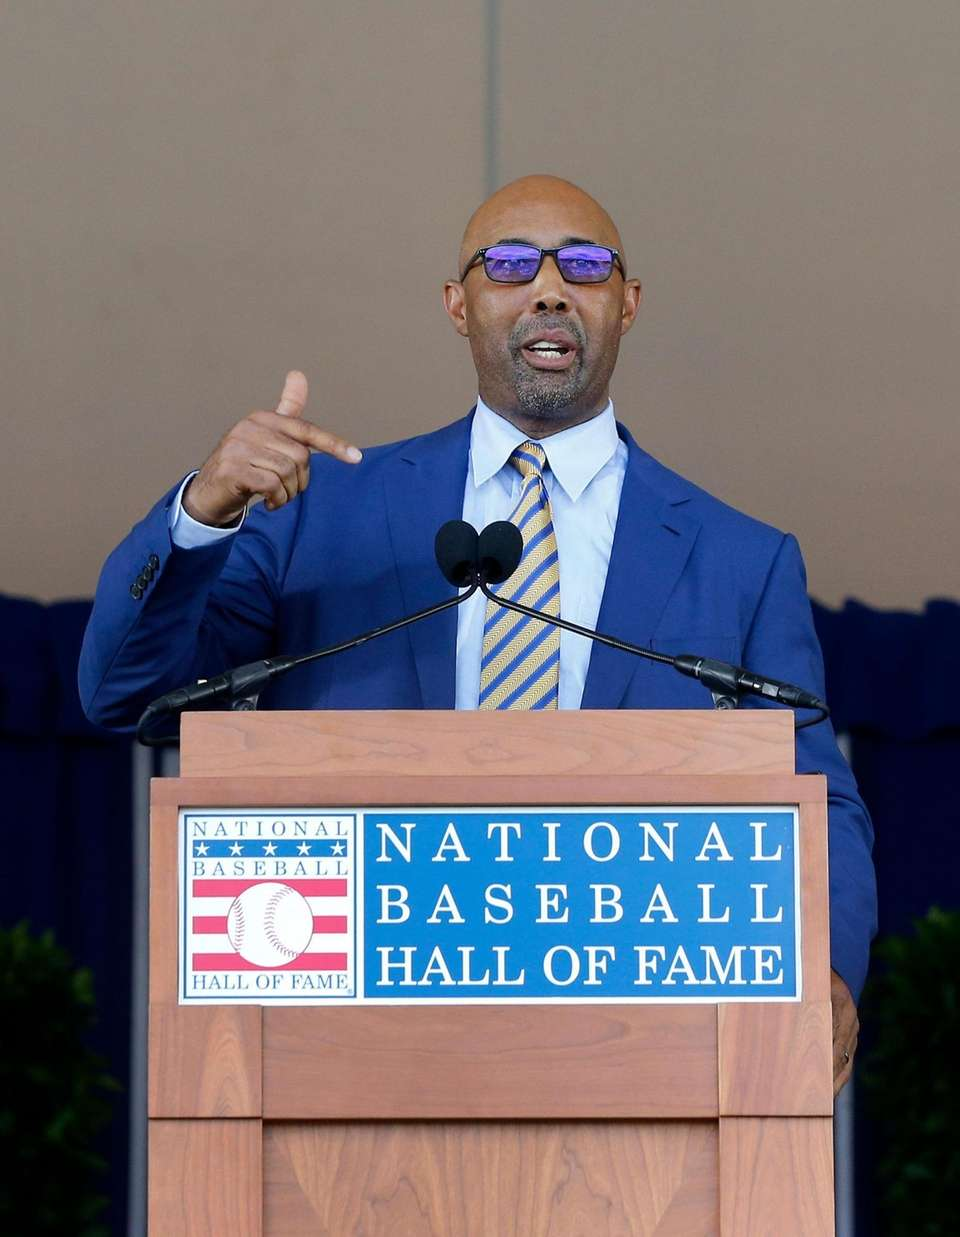 Harold Baines gives his speech during the Baseball